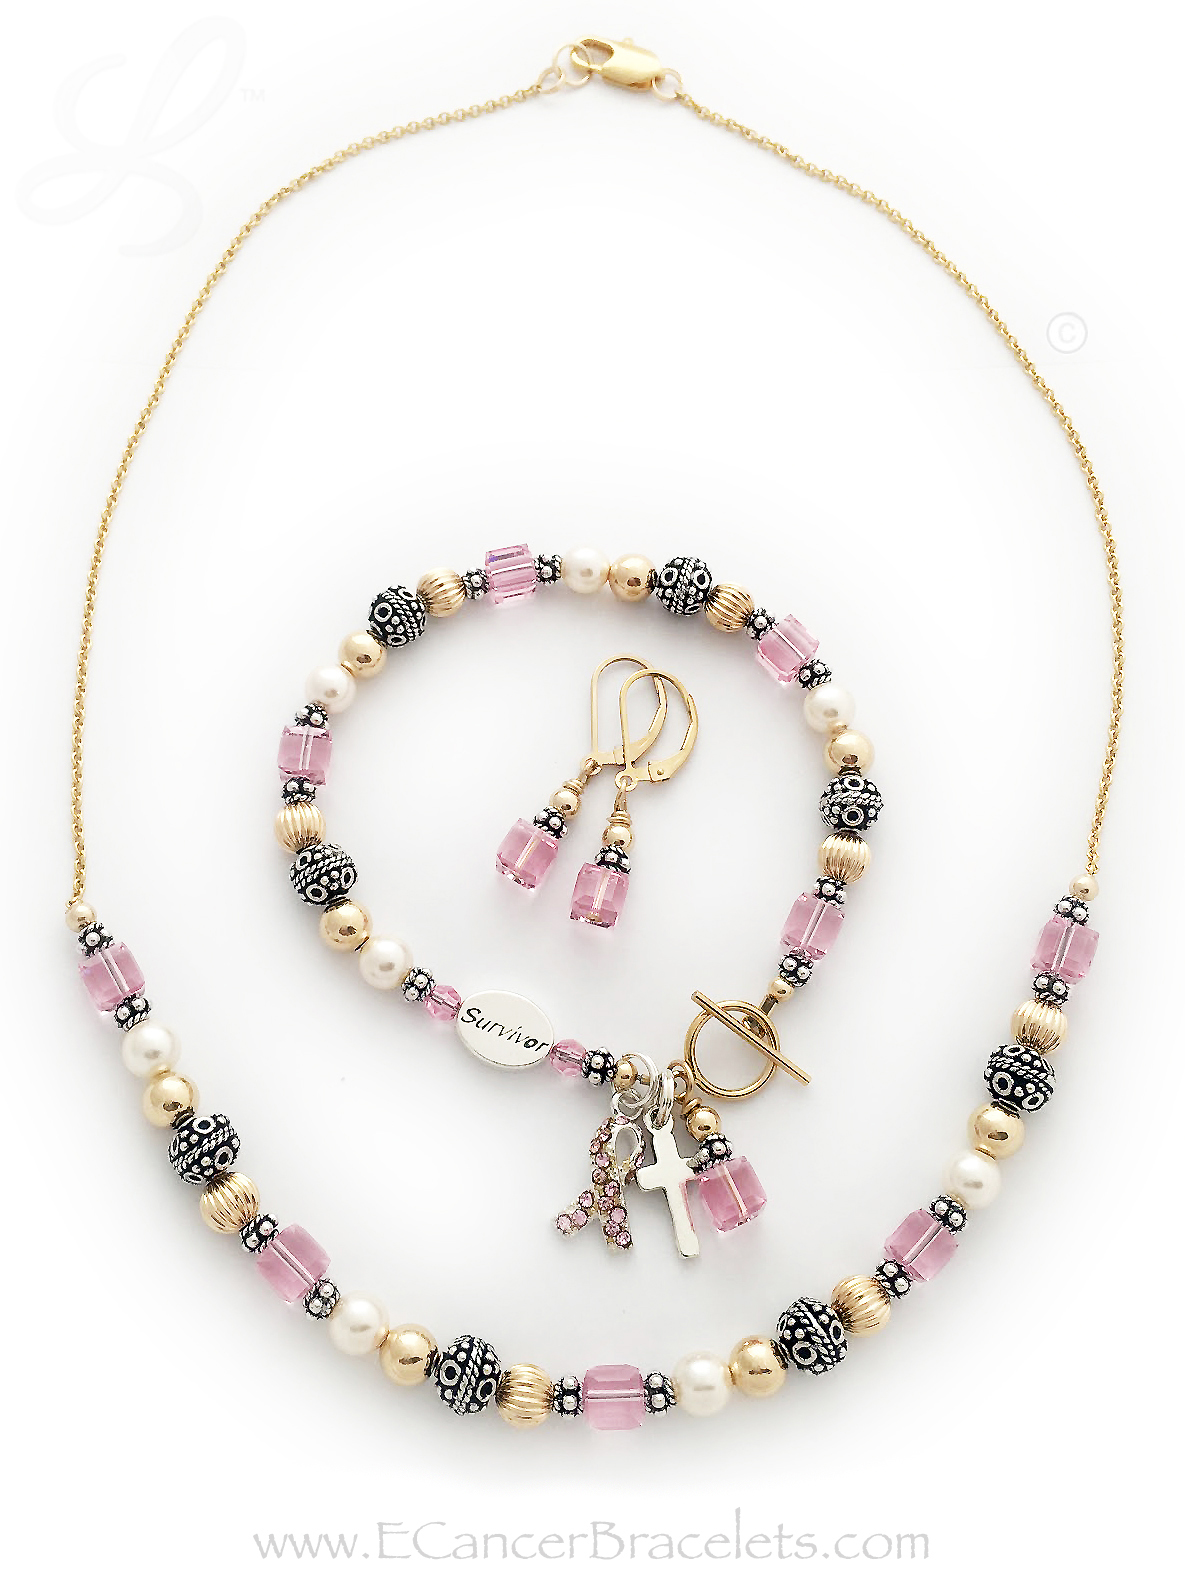 CBB-R26 - Breast Cancer Survivor Bracelet, Necklace and Earrings shown.Bracelet: They added a SURVIVOR bead, Simple Cross Charm, Pink Crystal Ribbon and 14k gold-filled smooth toggle clasp